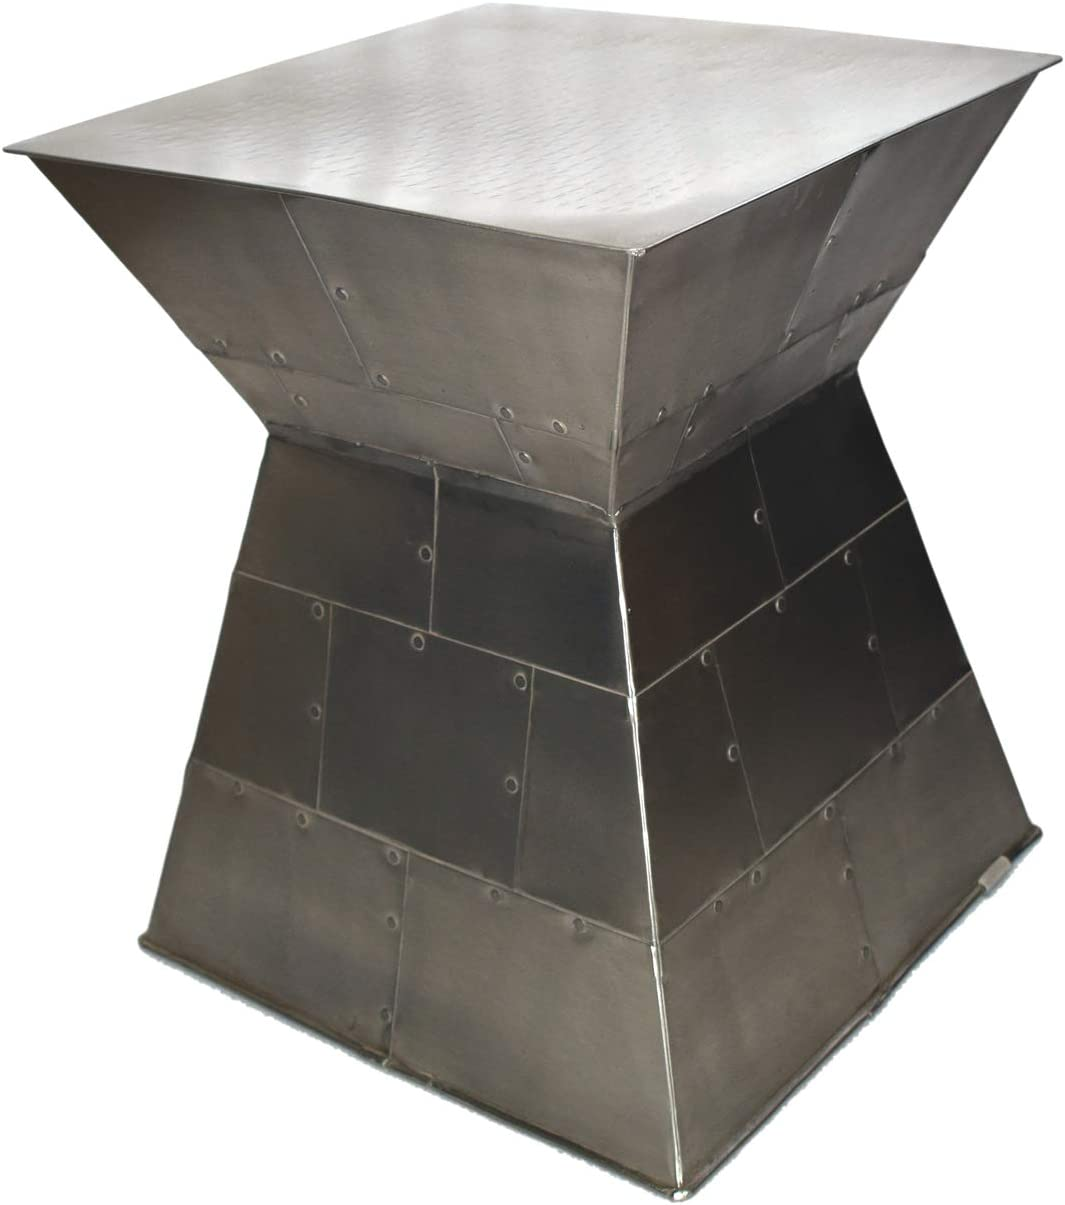 Foreign Affairs Home Décor Industrial Chic Silver Metal Accent Table Cape